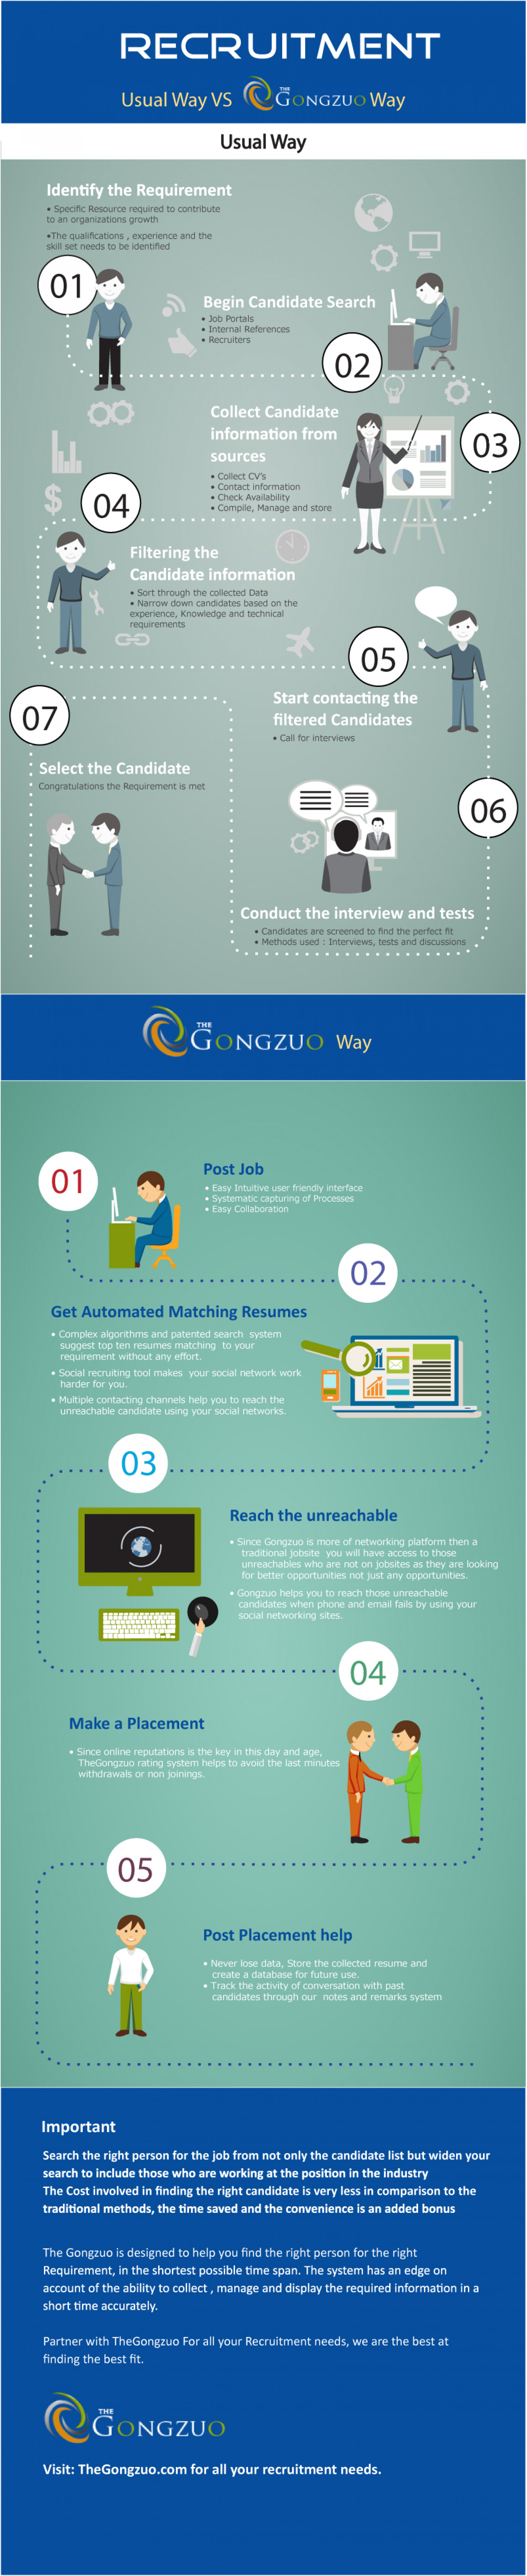 Recruitment: Usual Way vs TheGongzuo Way Infographic